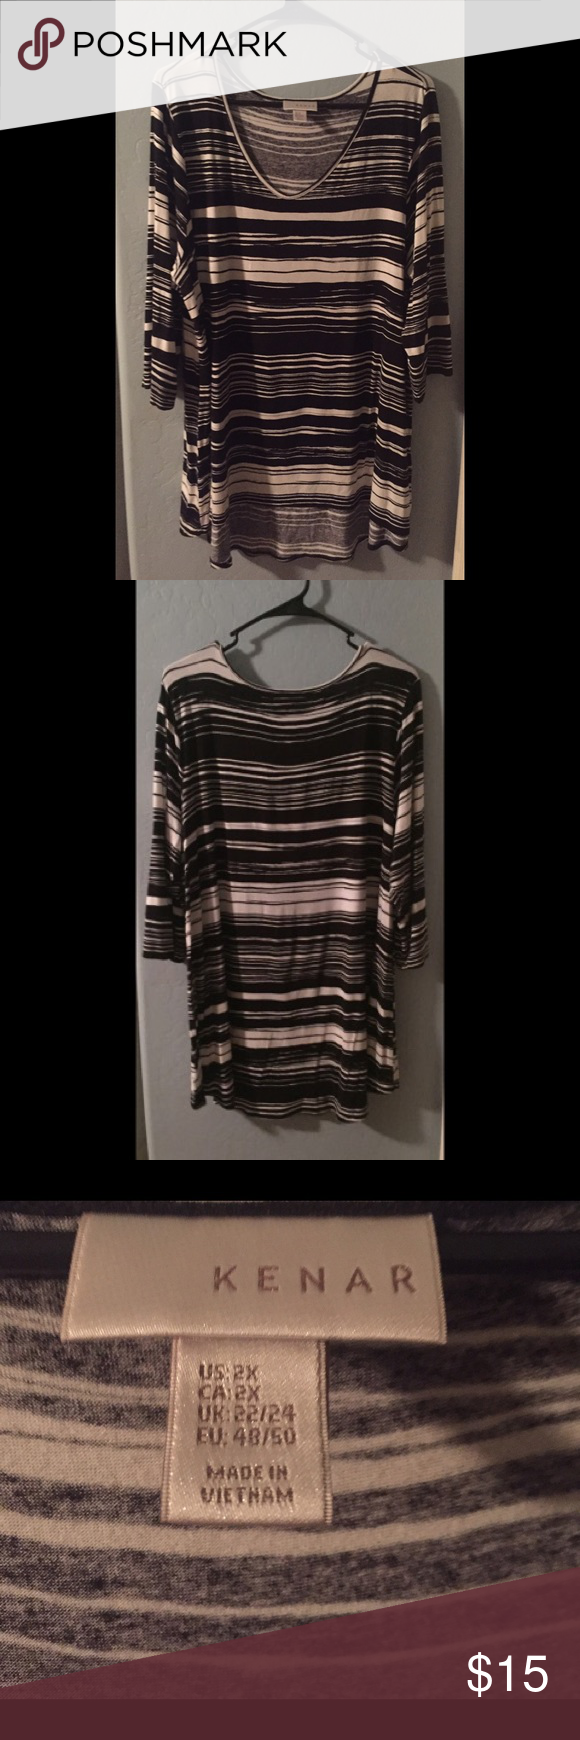 + Sized! Striped top Knit black and white top. Great for the office. No holes or wear. Smoke free home. All offers considered. Kenar Tops